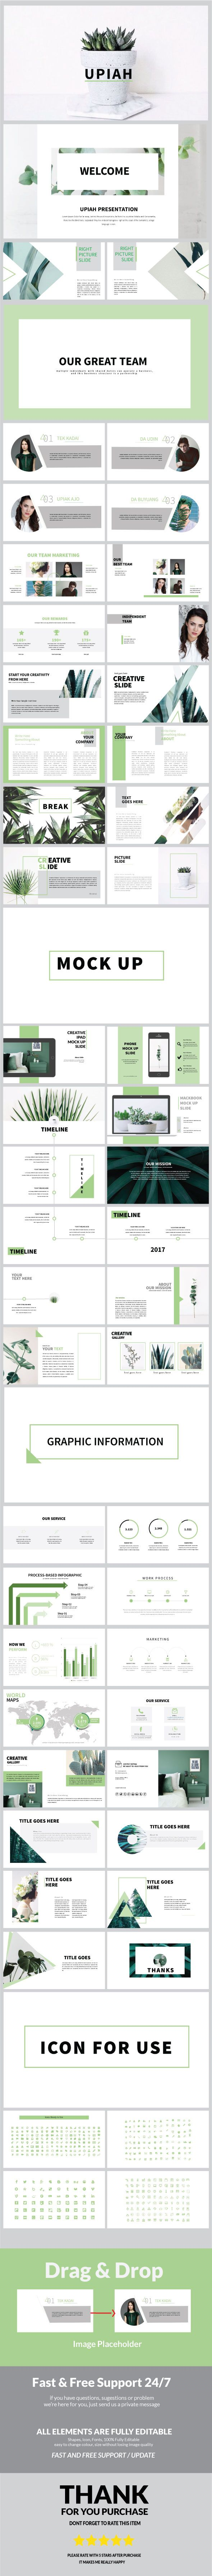 Upiah Multipurpose Powerpoint - Business PowerPoint Templates